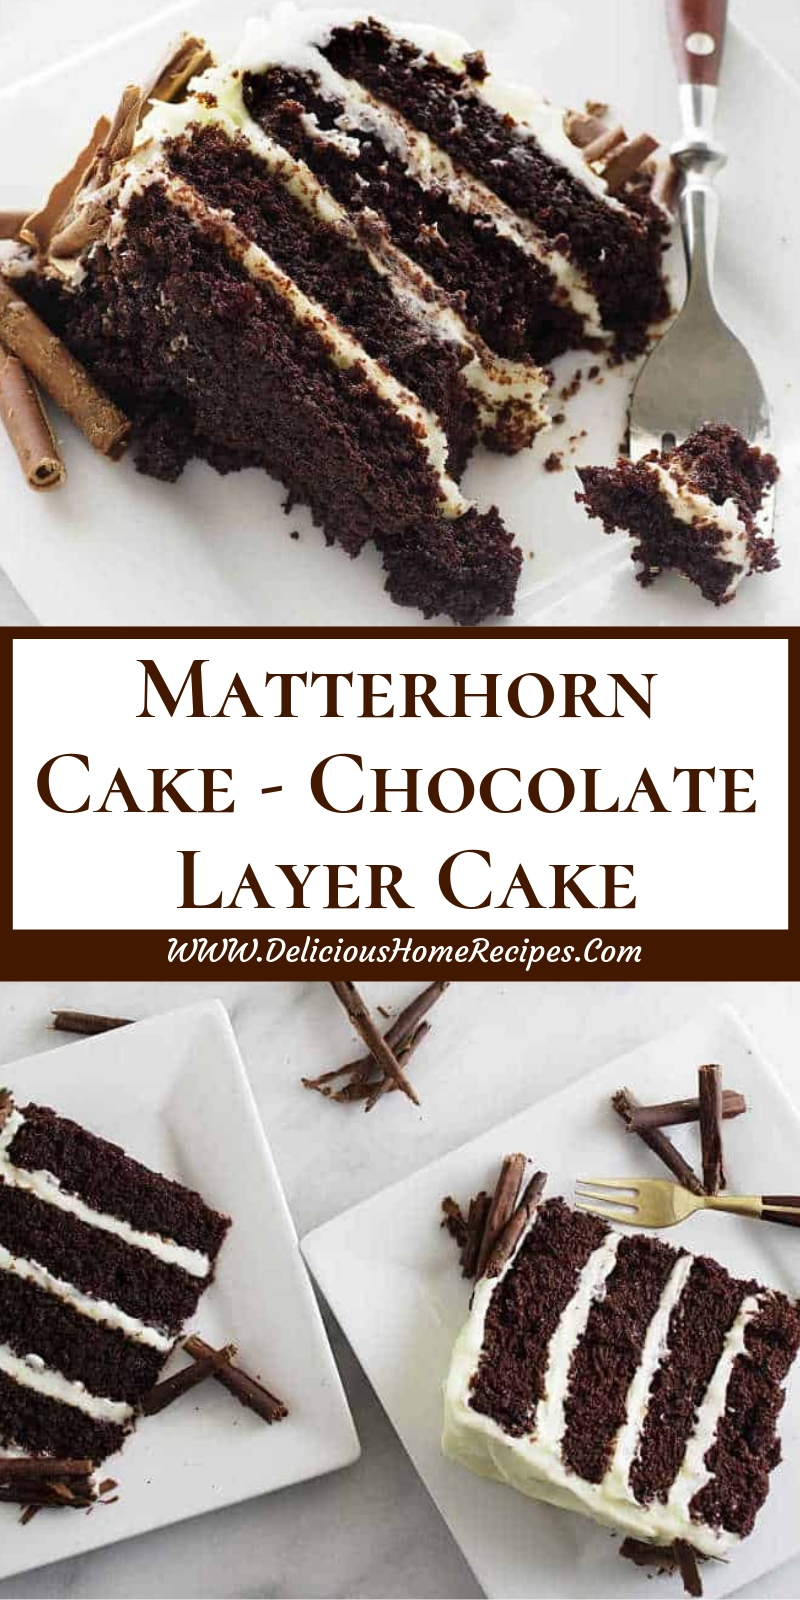 Matterhorn Cake - Chocolate Layer Cake